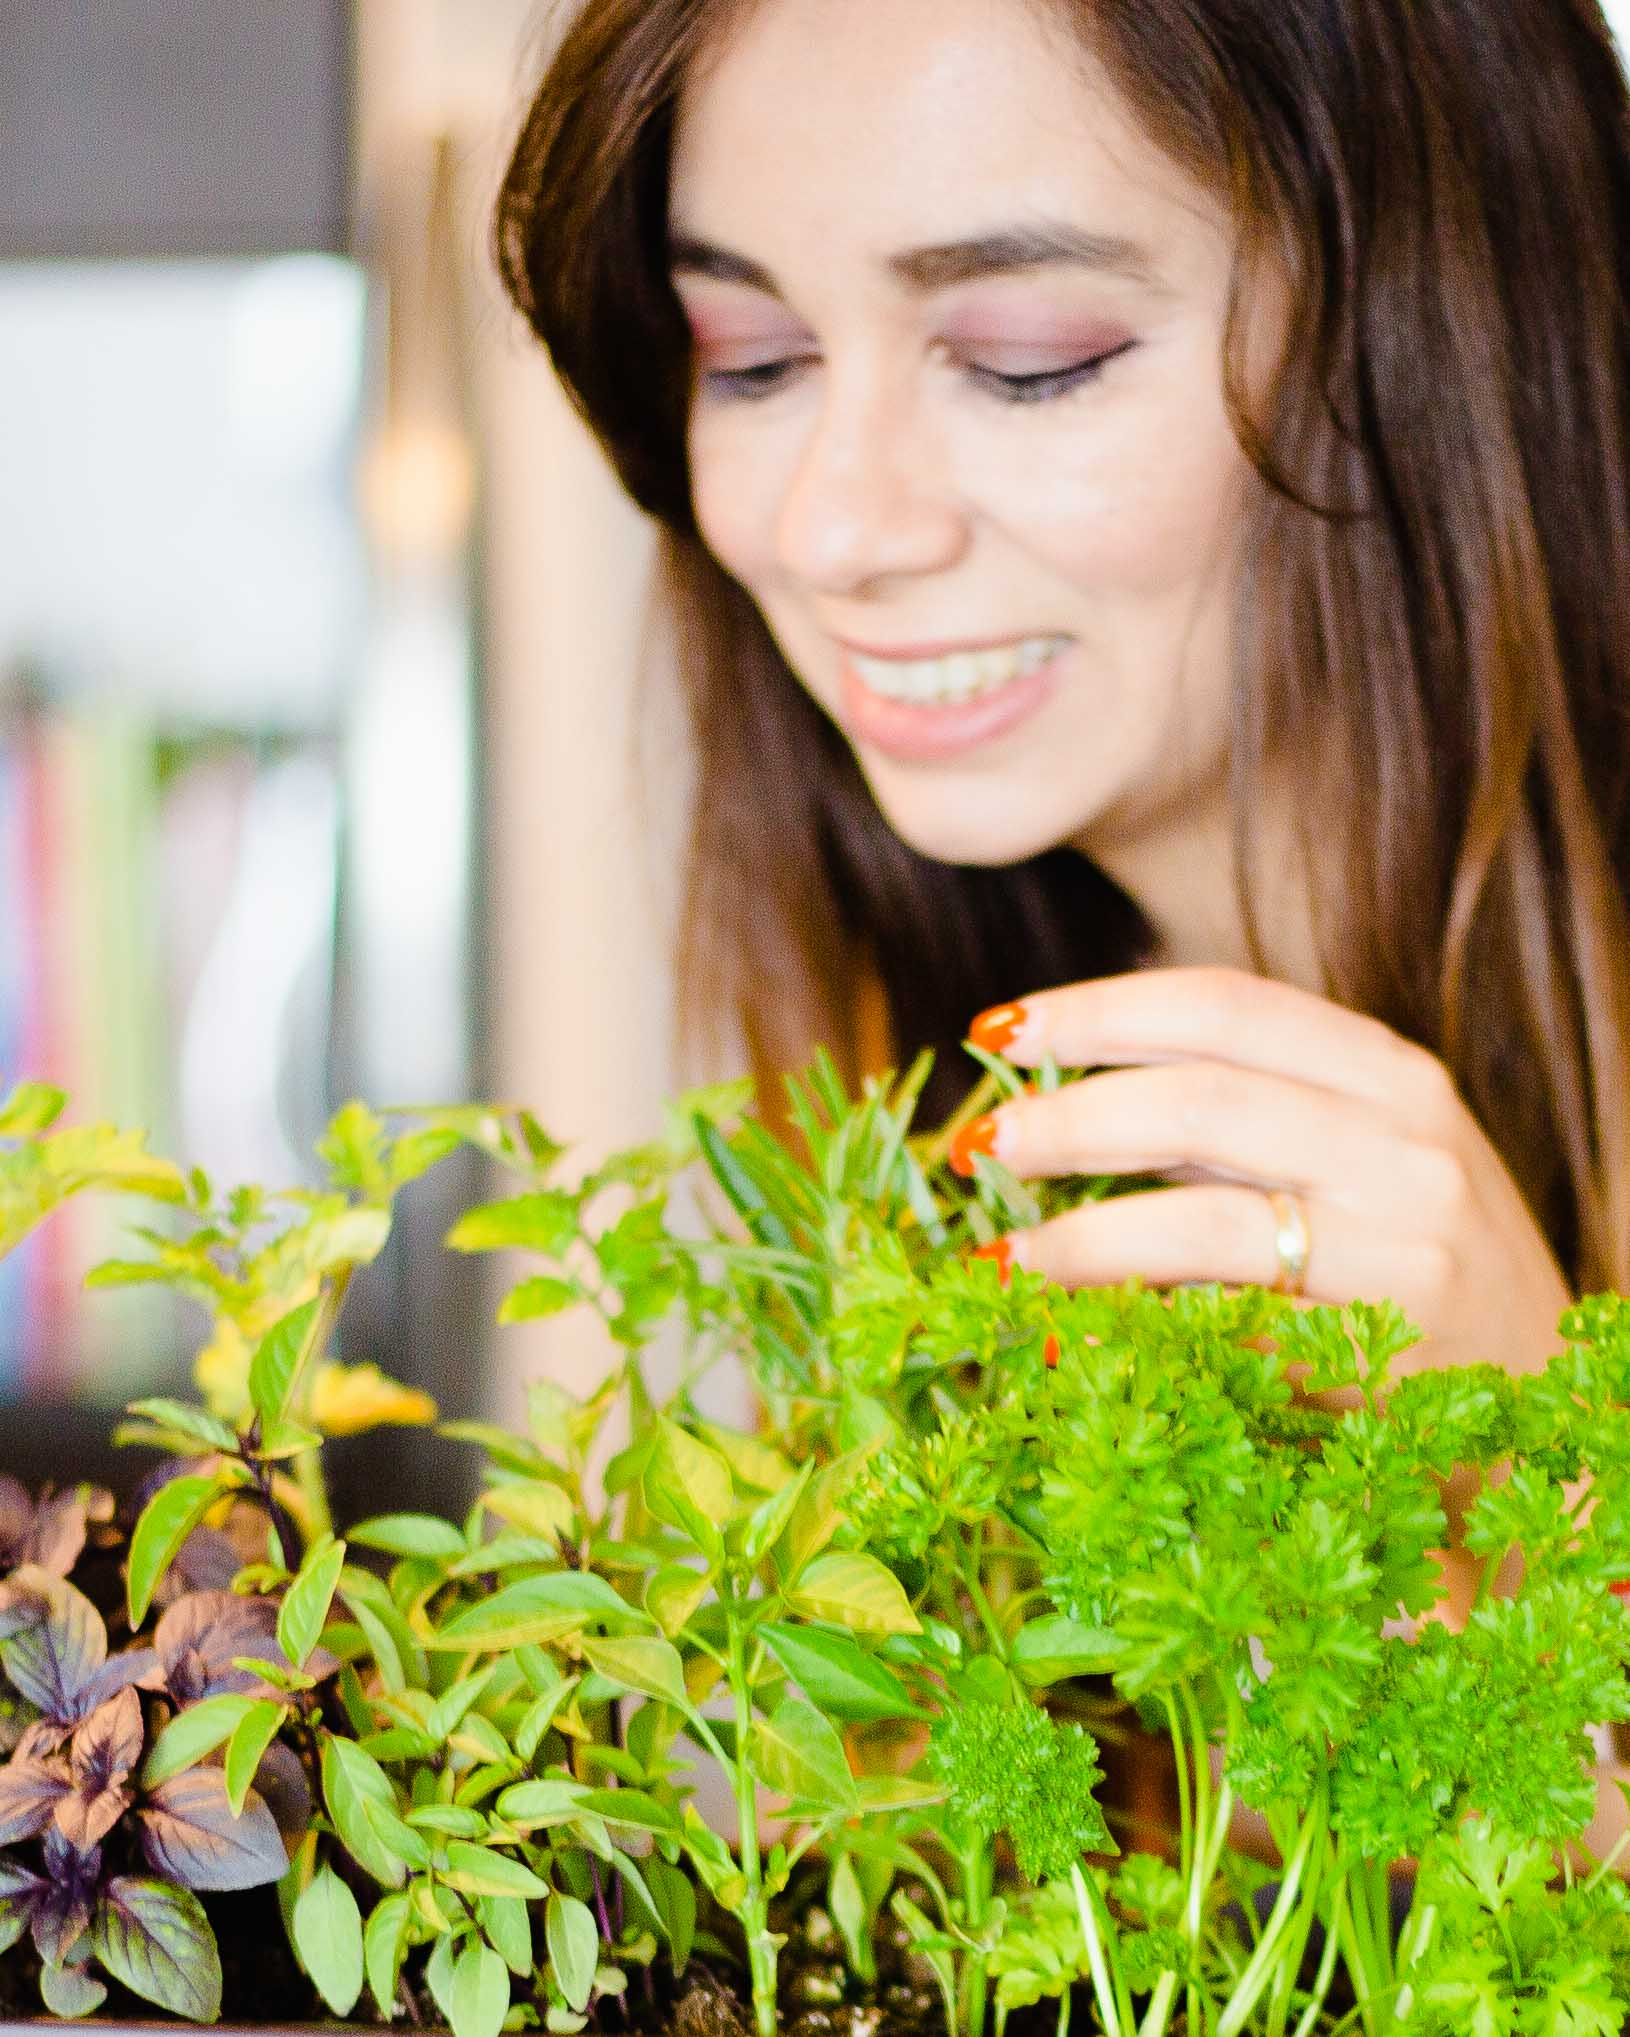 How to Grow Garden Vegetables in the Kitchen and Have Fresh Herbs Year-Round Effortlessly